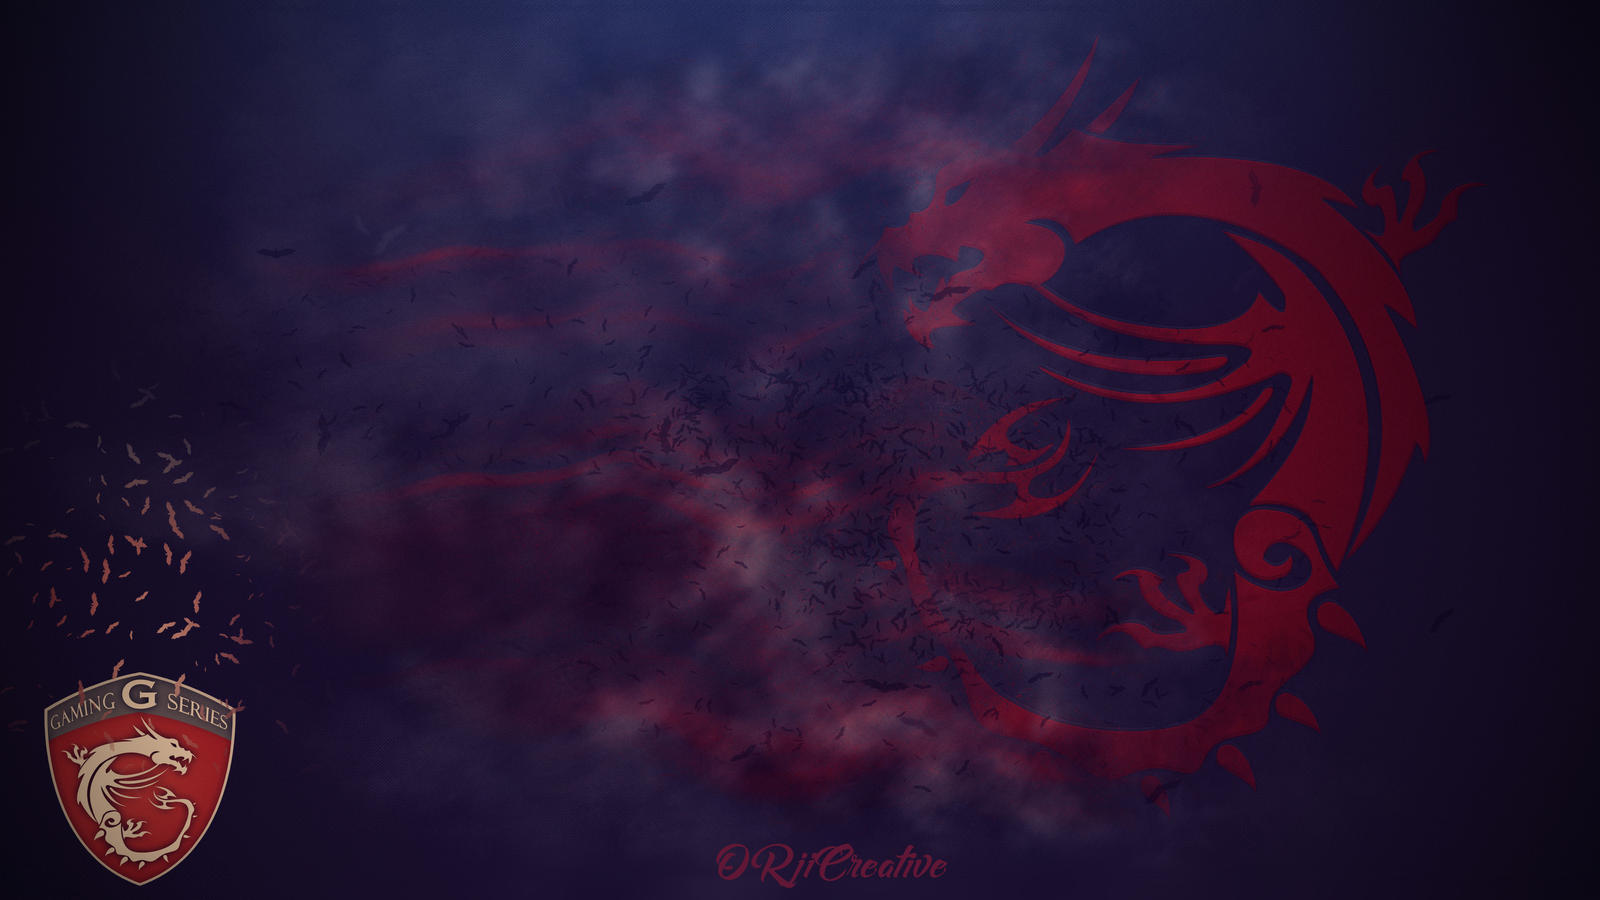 Msi Gaming Series Dragon Wallpaper By Orjicreative By